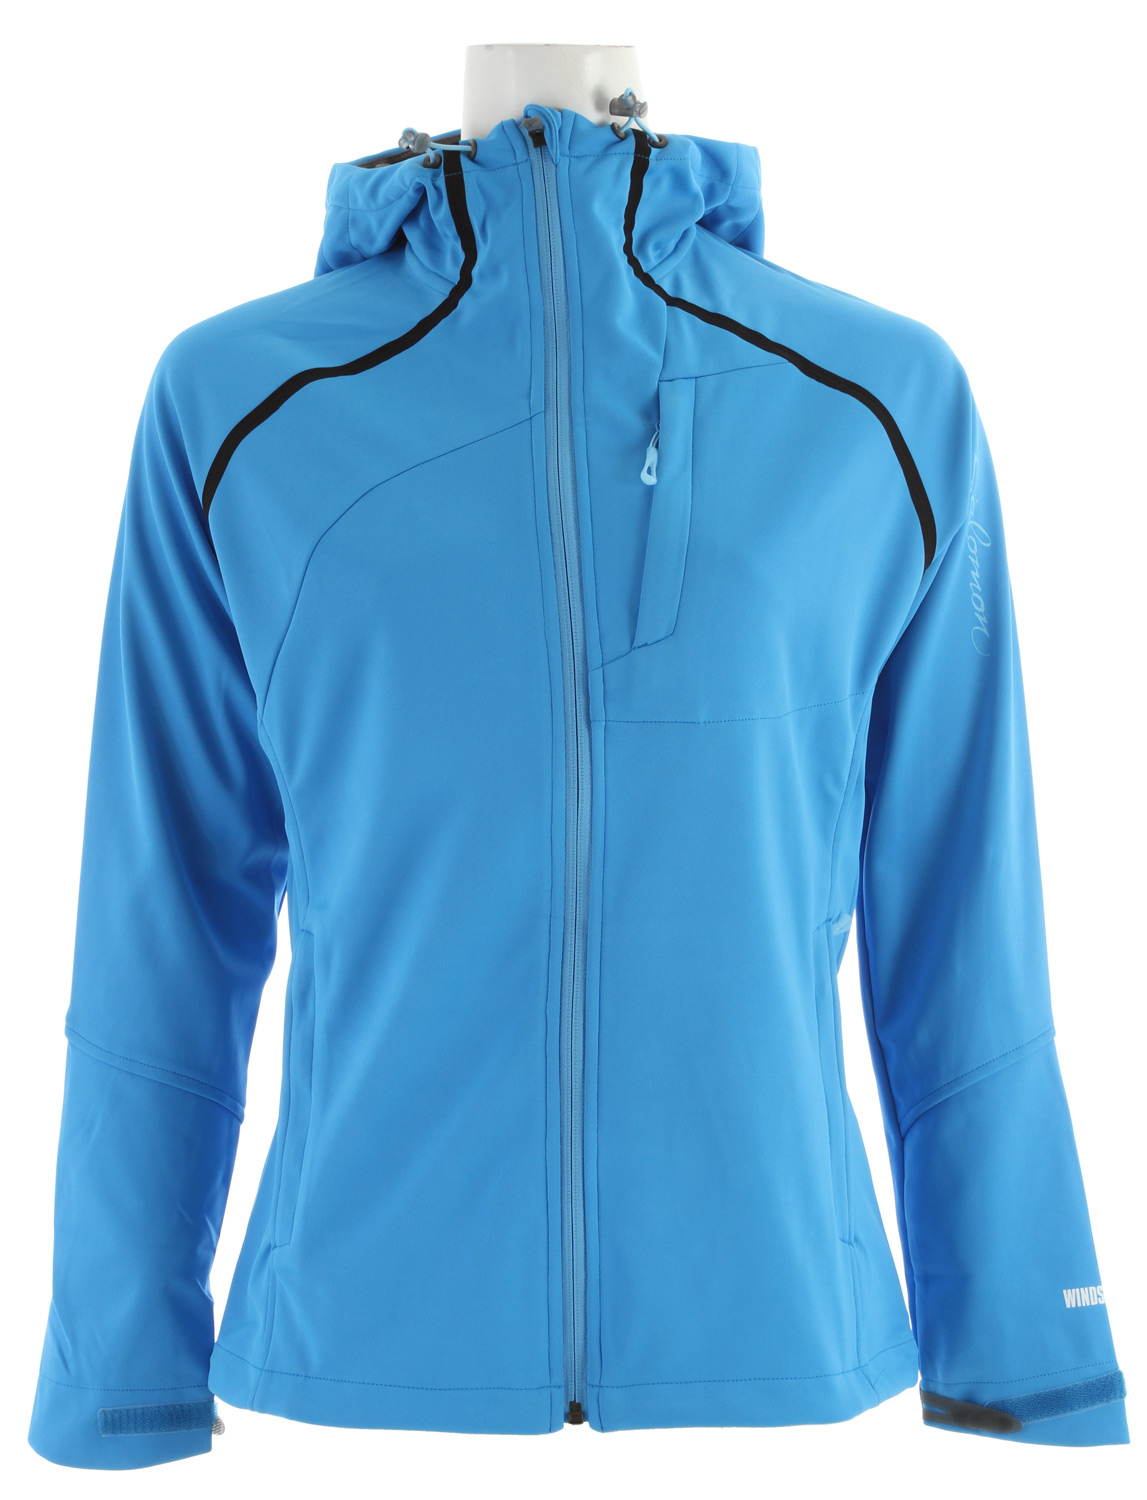 Camp and Hike Salomon Quest Hoody Windstopper Jacket - $137.95